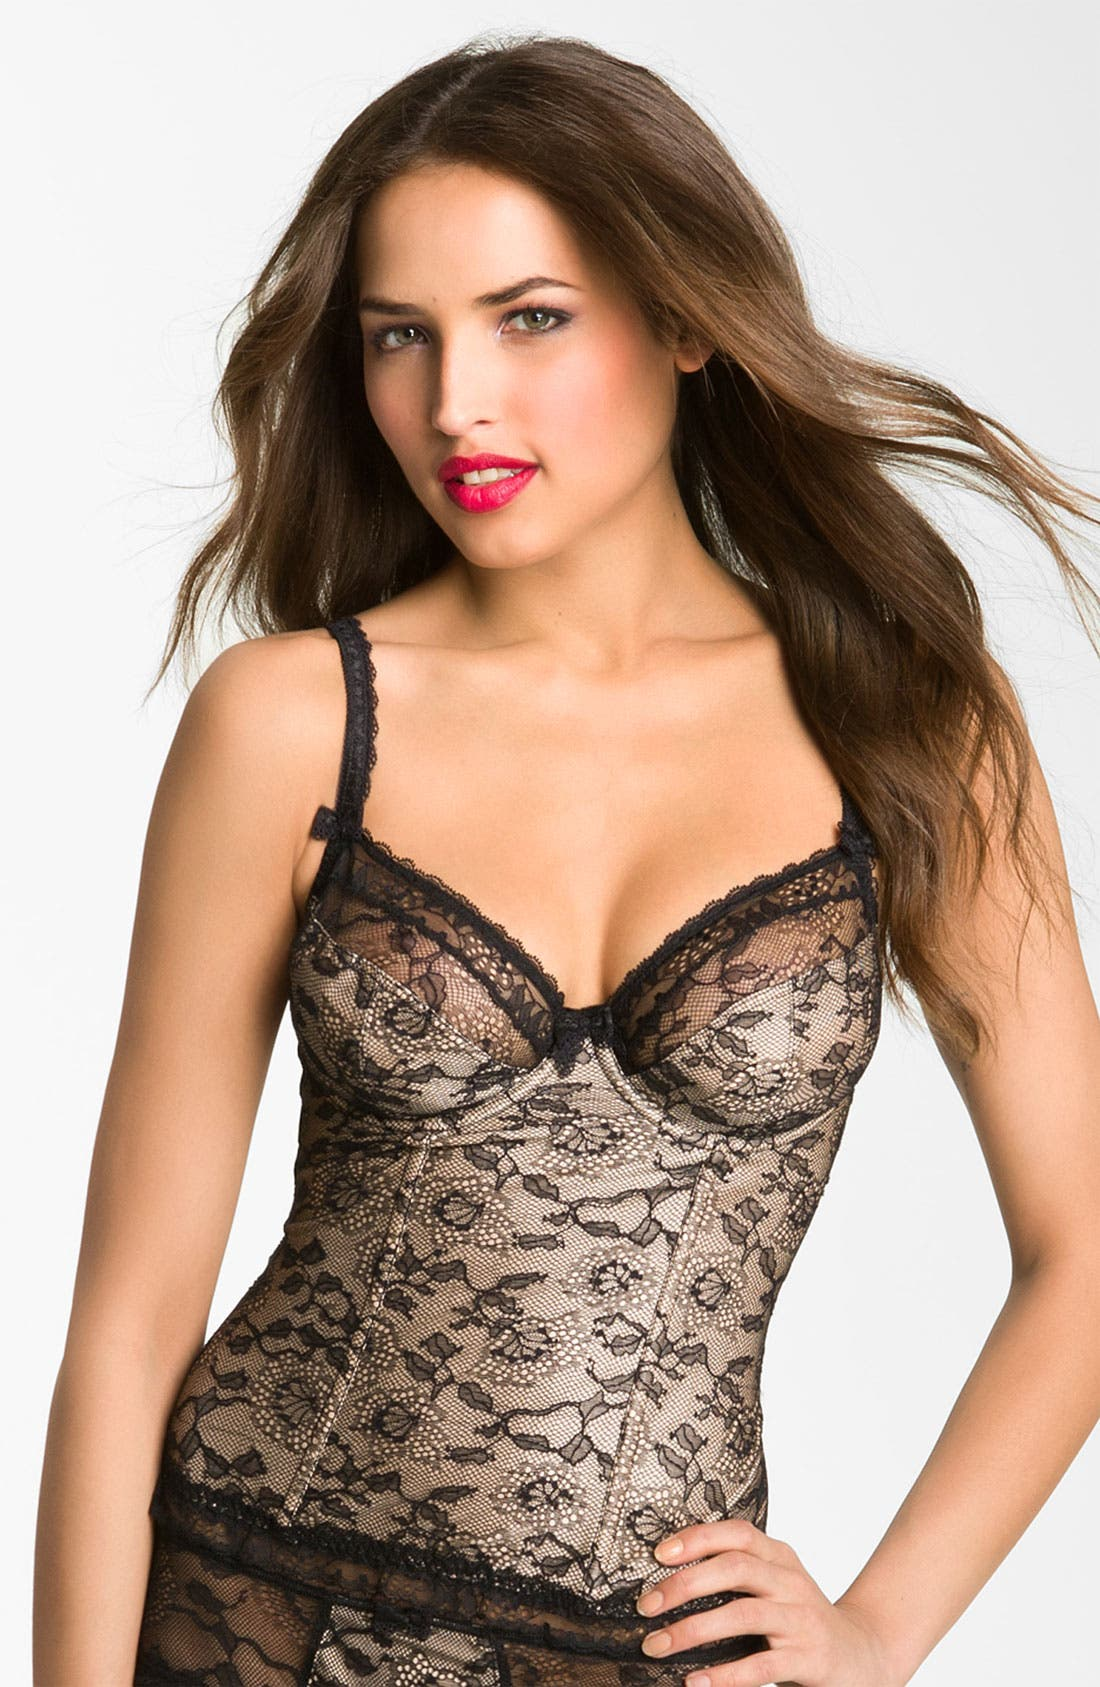 Alternate Image 1 Selected - Fantasie Underwire Basque Corset